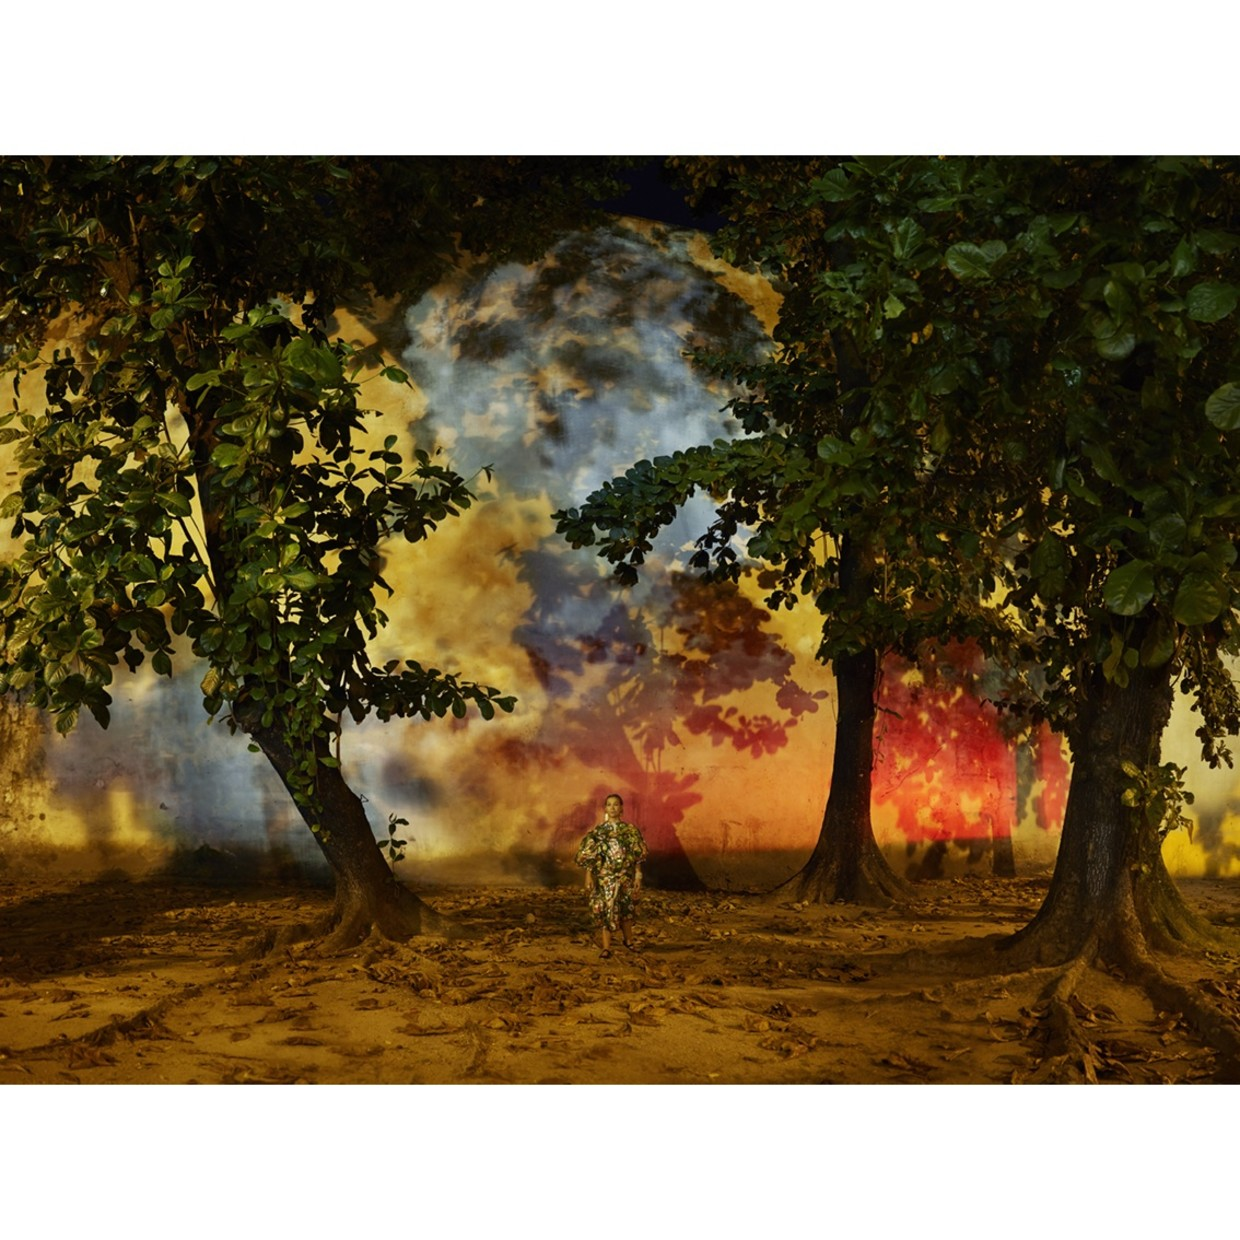 Prints by Picto, Paris. Framing by Circad, Paris. With support from the Sator gallery and Les Abattoirs, Musée – Frac...